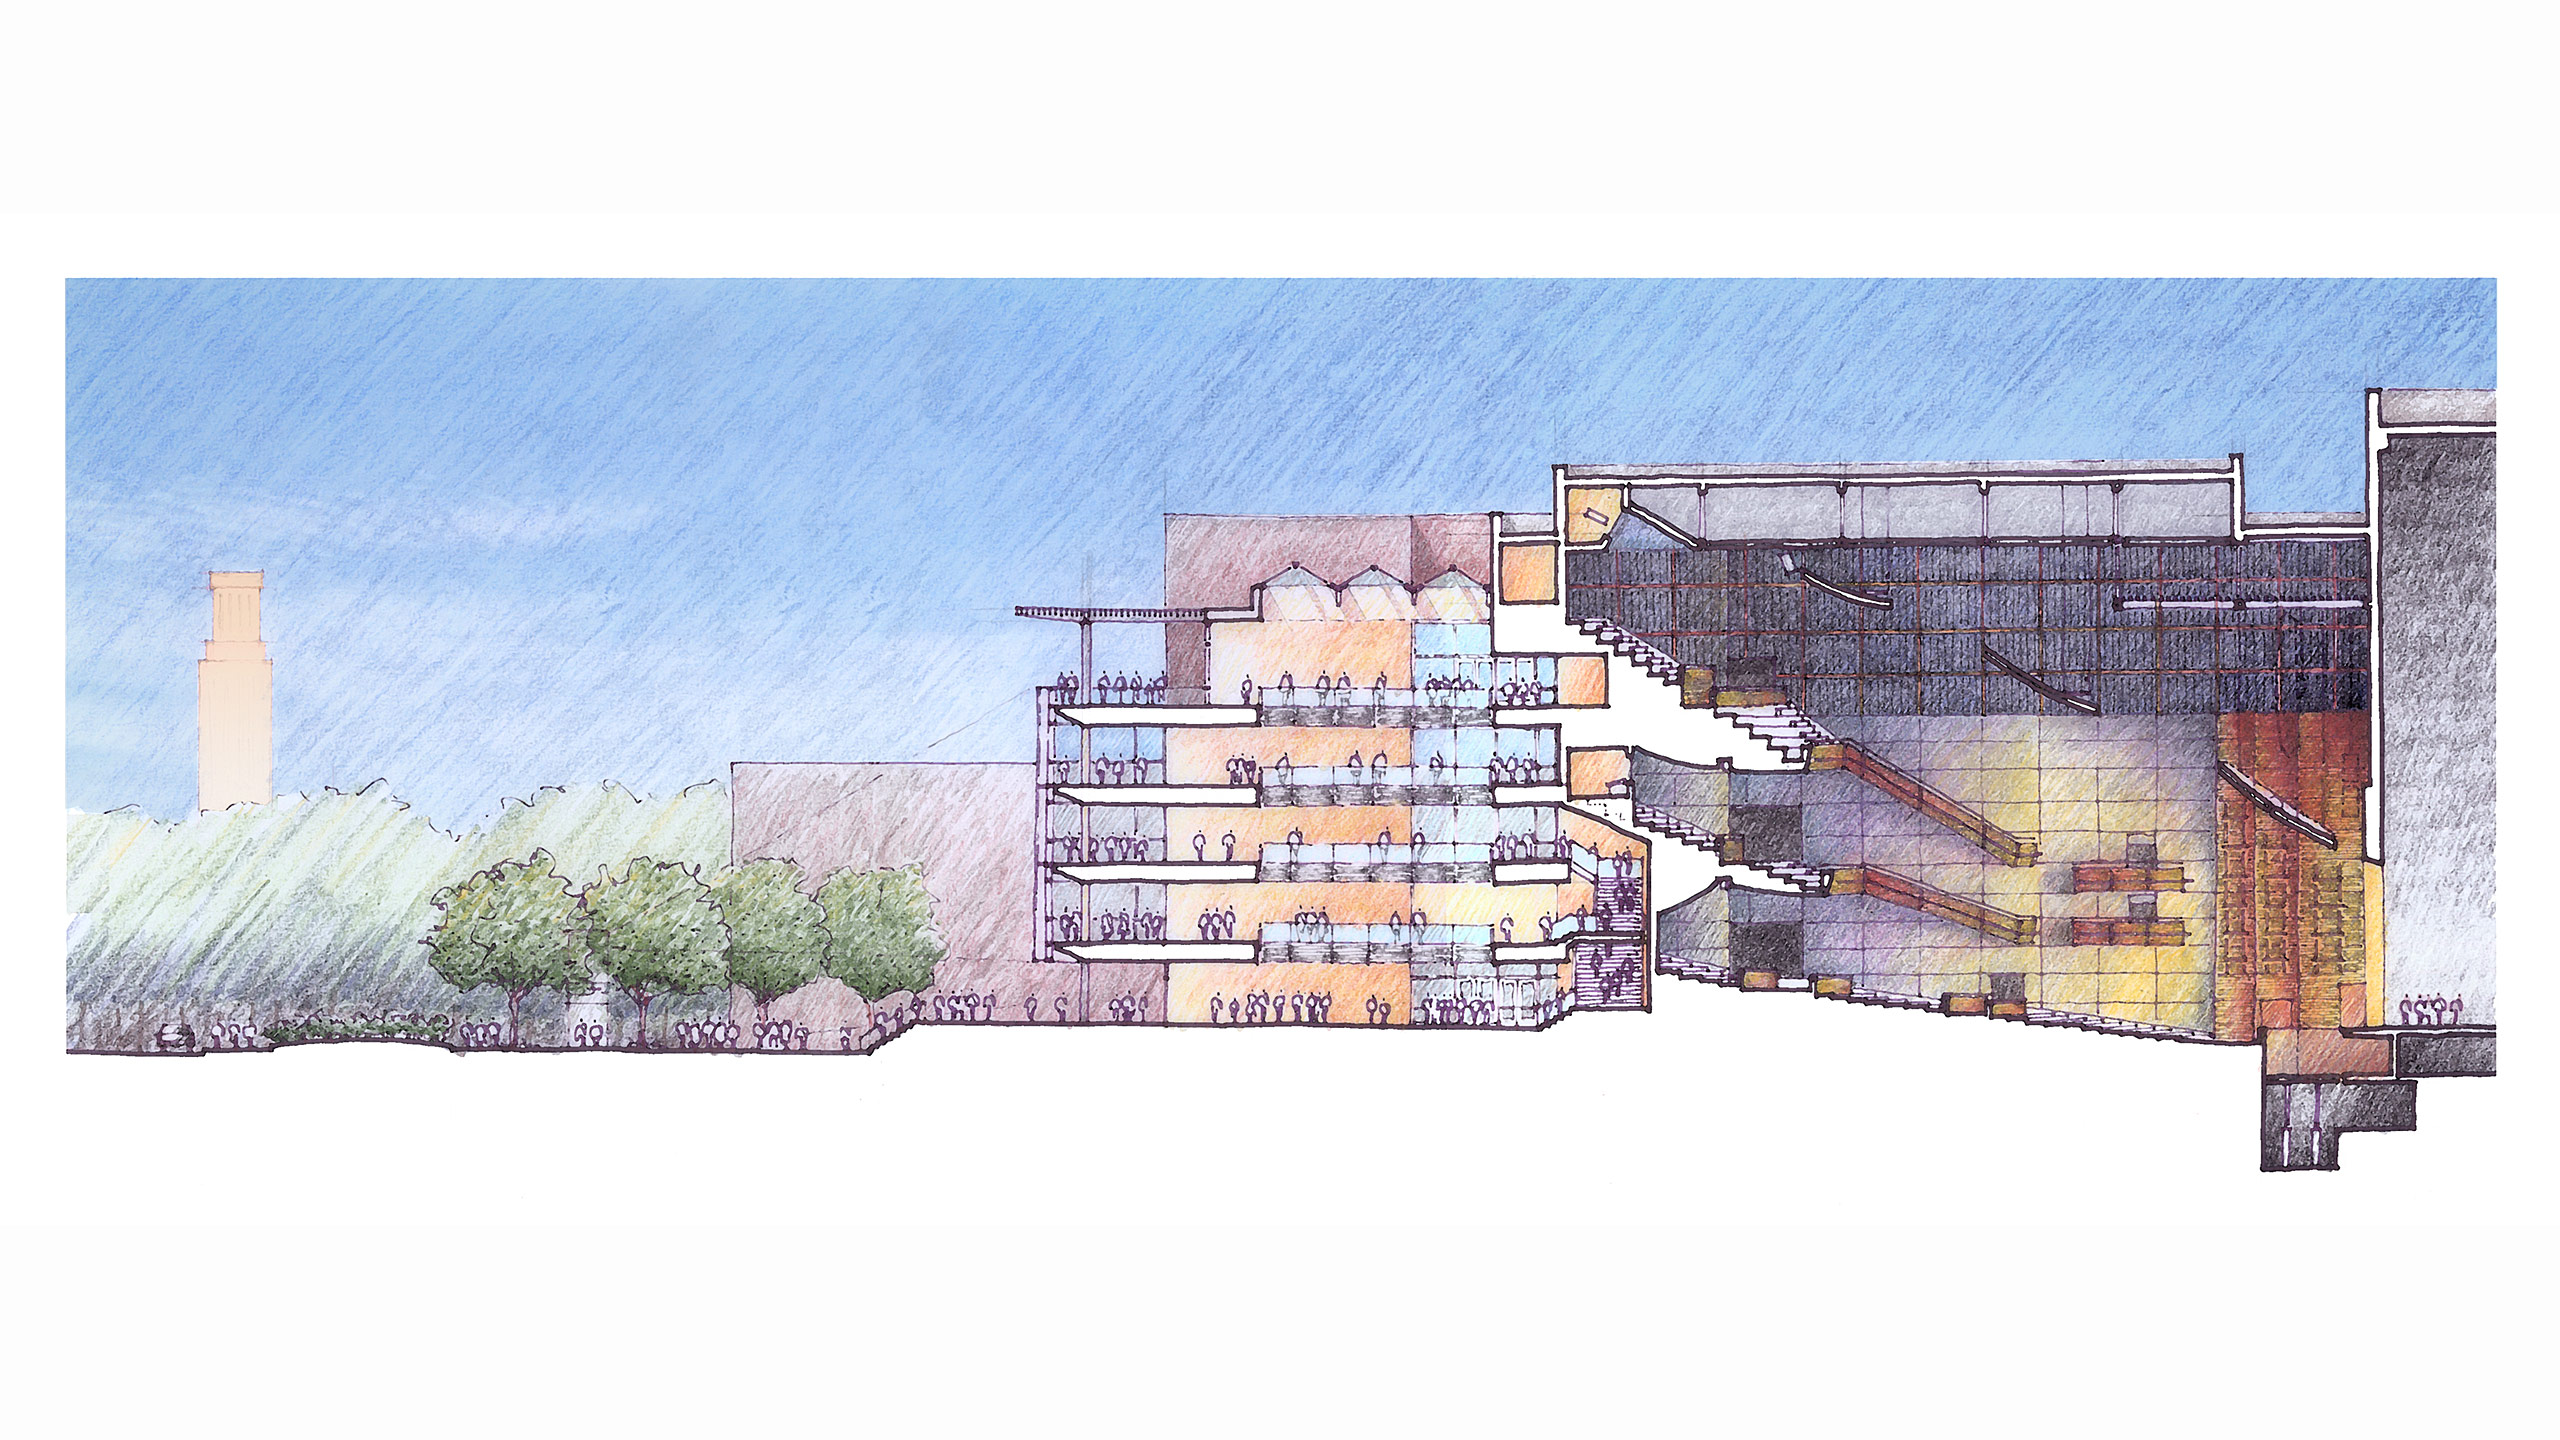 Bass Concert Hall Renovation and Addition at University of Texas at Austin / image 3